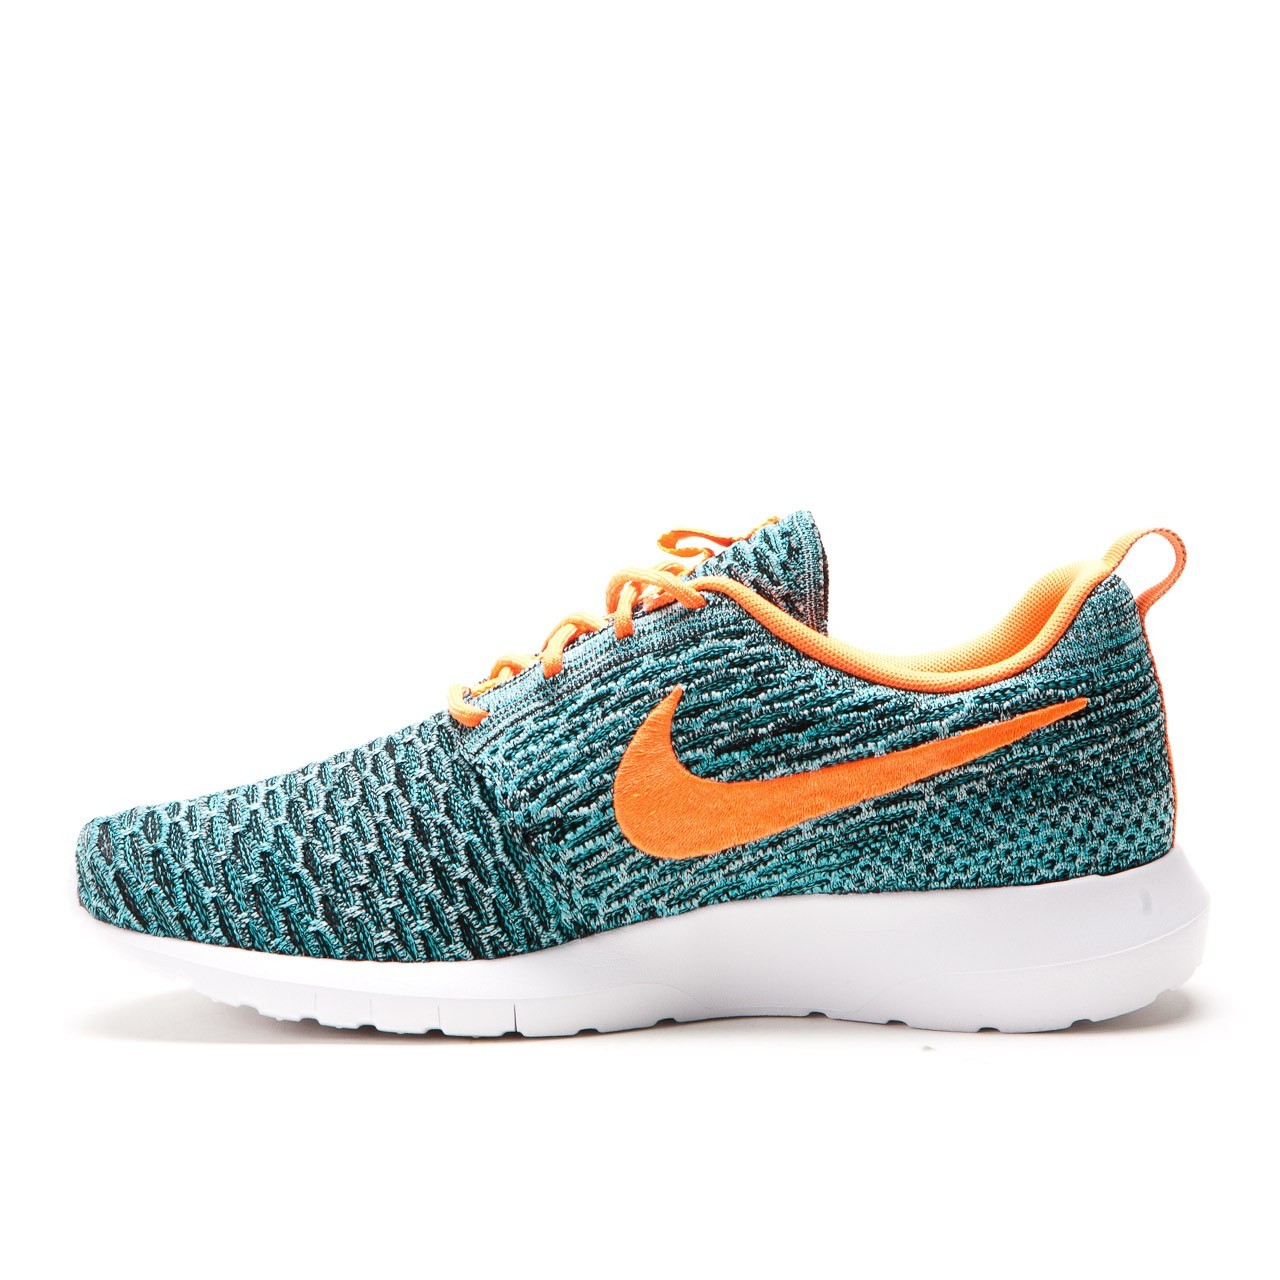 official photos 6e0b0 46495 nike-flyknit-roshe-run-black-total-orange-hyper-